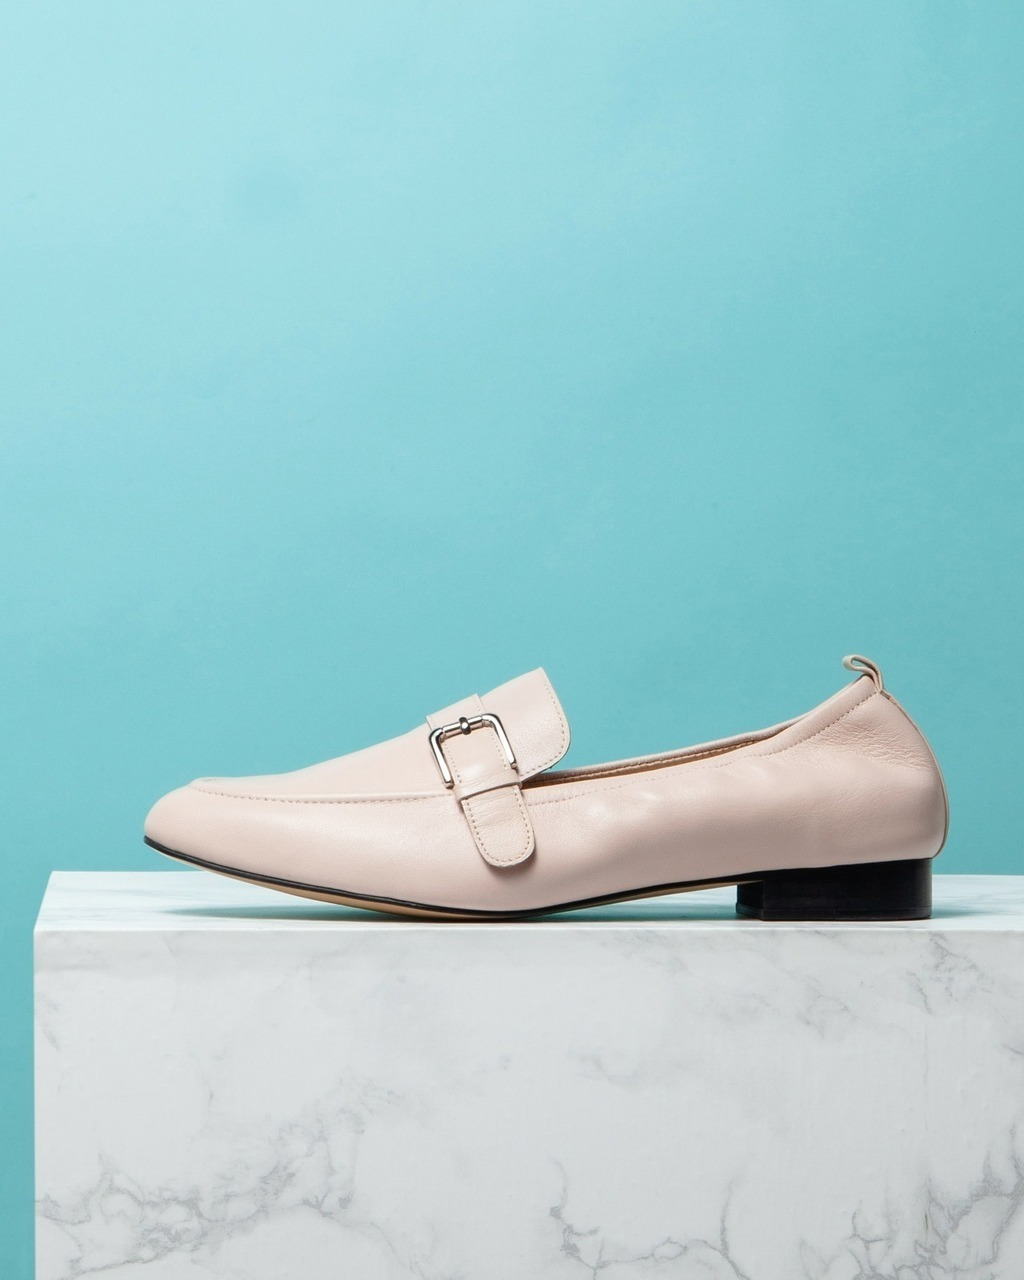 DORATORE Enel Baby Pink - Women's Shoes : South Korea